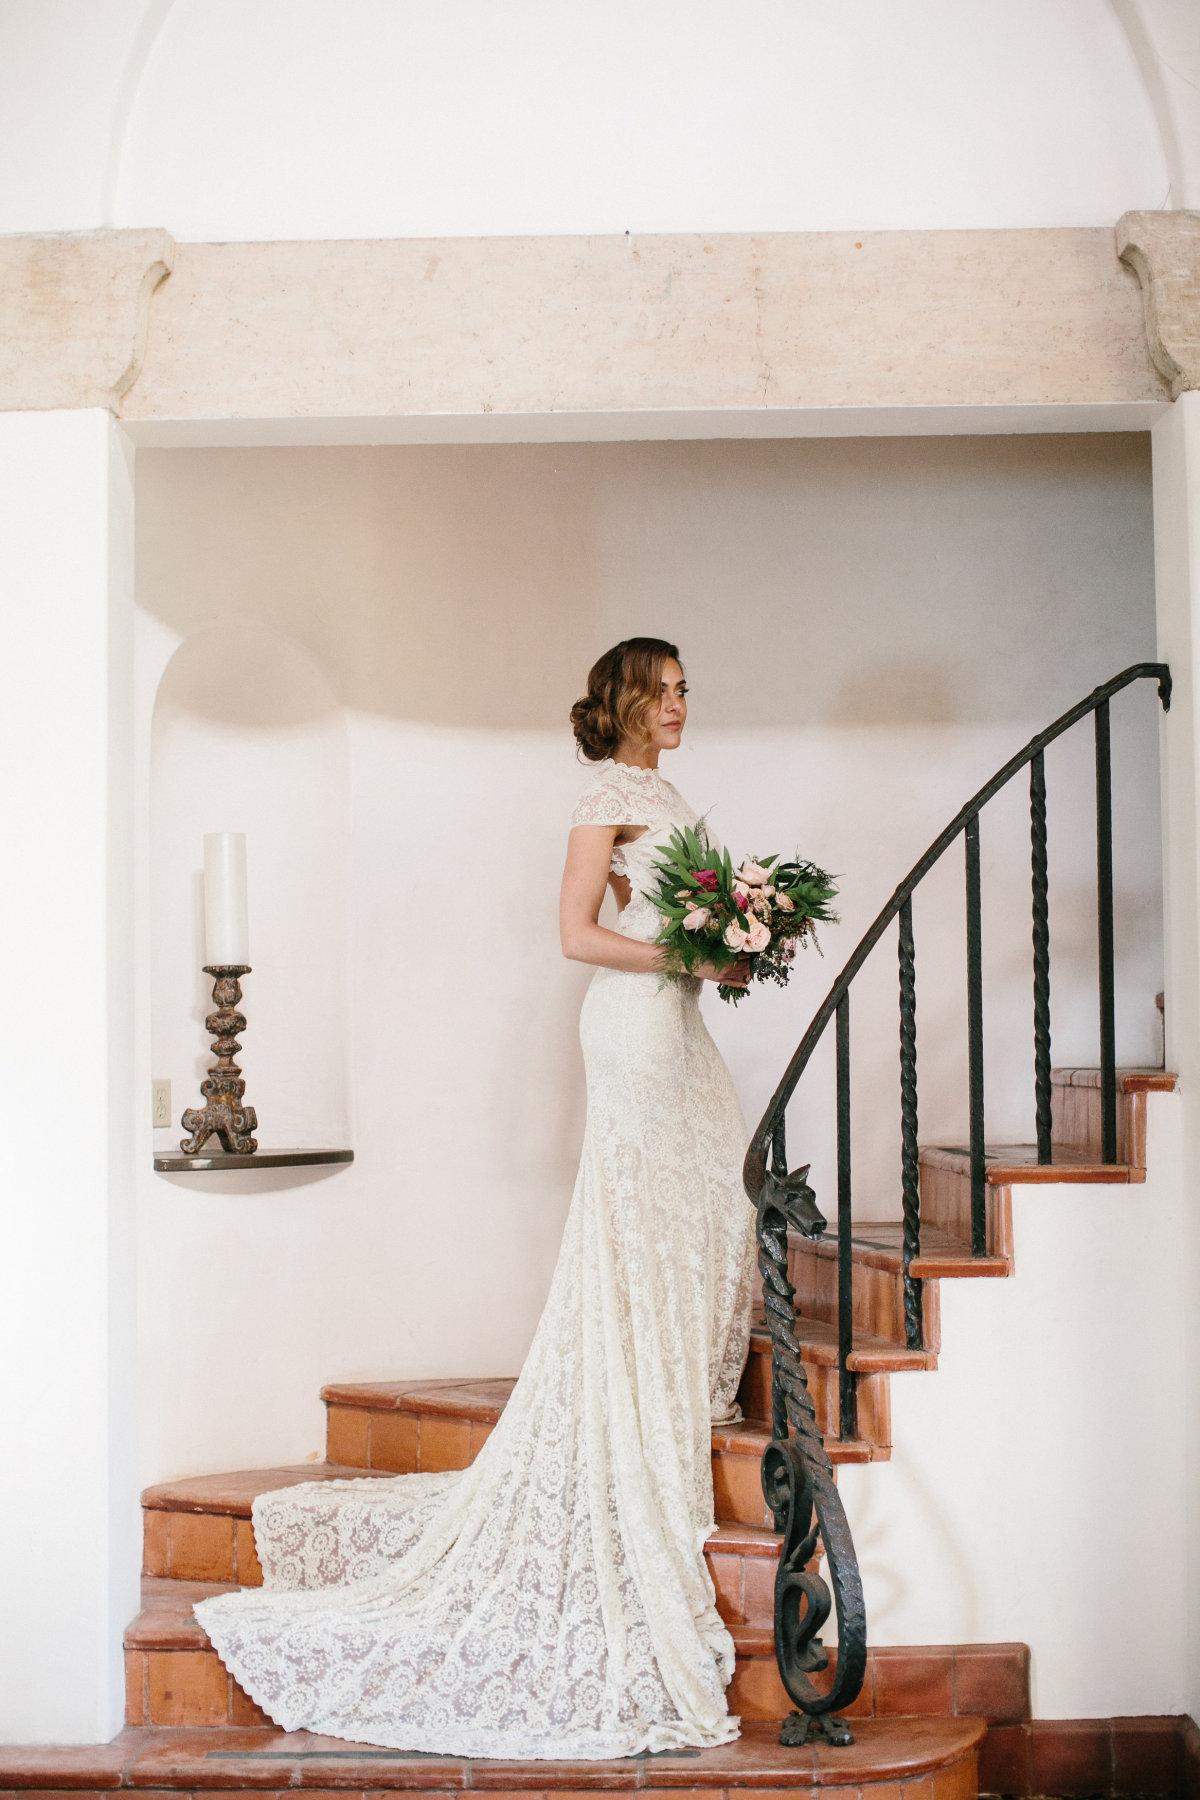 exquisite-lace-wedding-dress-backless-simple-and-timeless-long-elegant-train-feminine-and-romantic